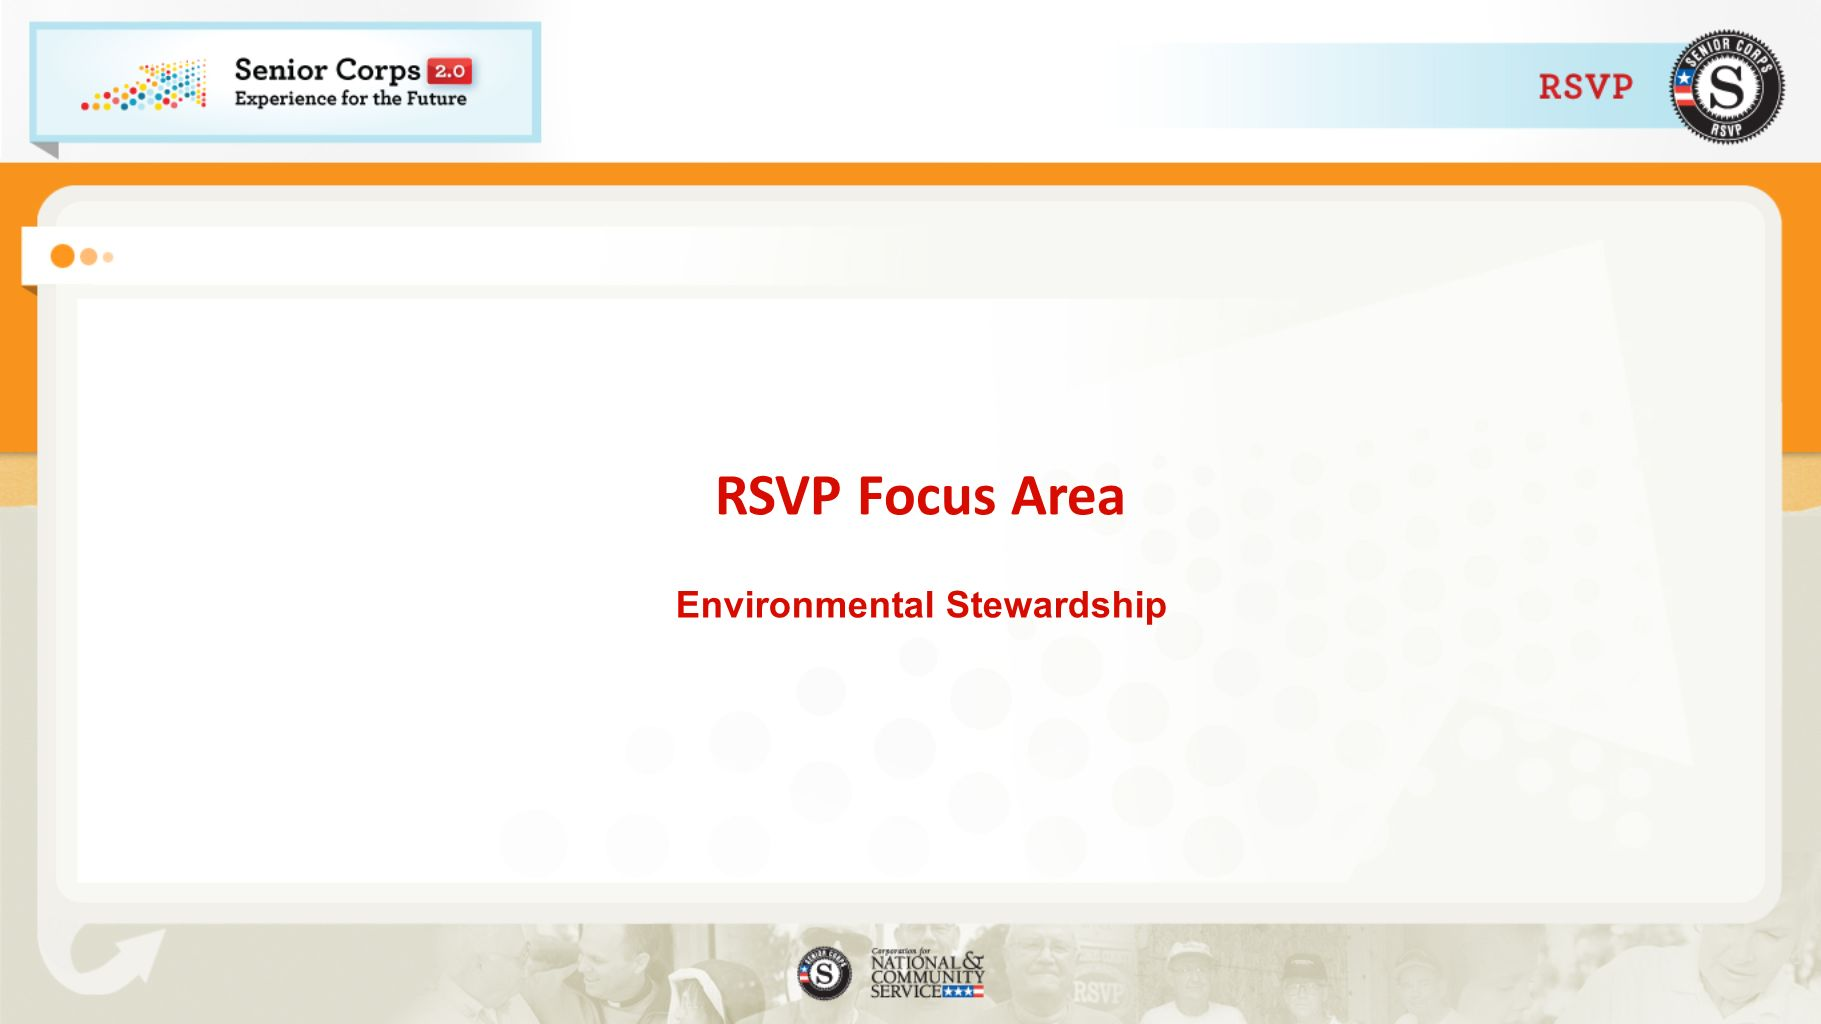 RSVP Focus Area Environmental Stewardship